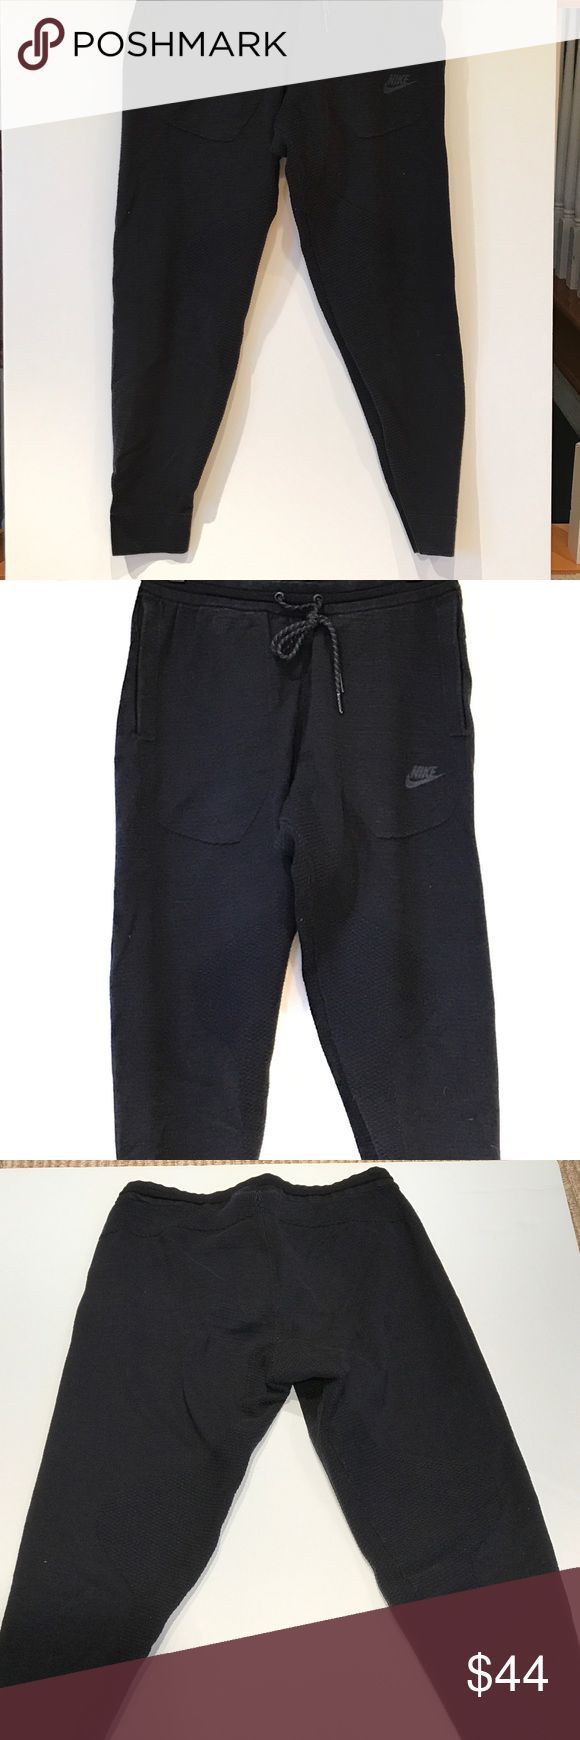 Men's workout Nike pant Men's drawstring fitted workout sweatpants with stretch fabric in crotch going down inner thing to elastic bottom.•Very breathable fabric•has pockets Nike Pants Sweatpants & Joggers